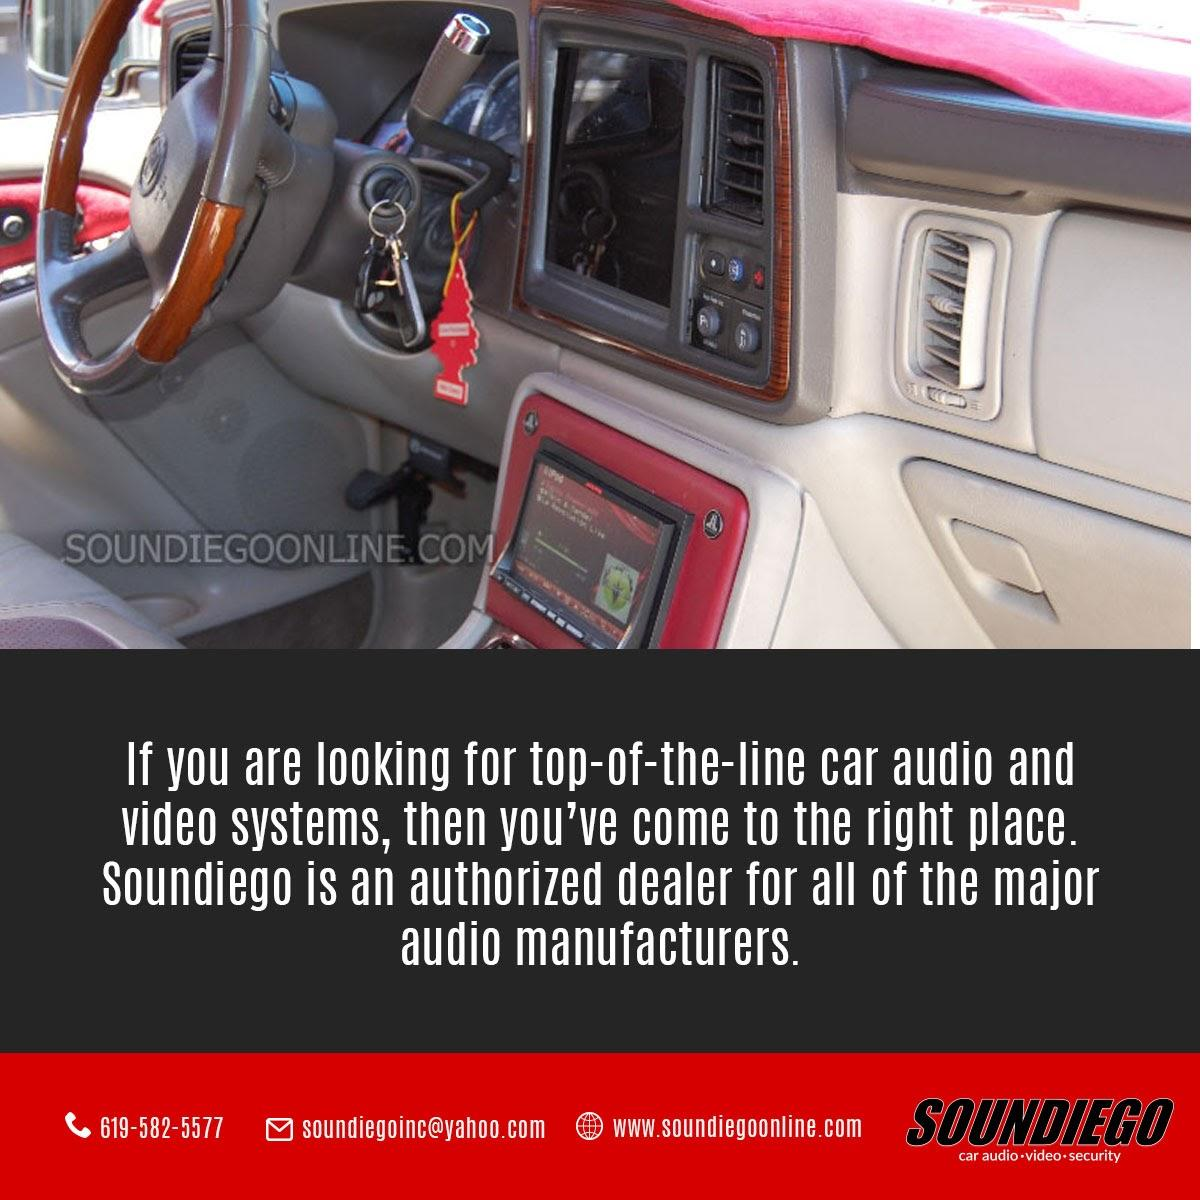 Car Lighting Installation Near Me Slammed Custom Car Stereo Trunk Install Audio further Car Audio And Video Installation Near Me furthermore Caraudiobatonrouge in addition Houston Car Stereo Houston 2 moreover Used 2010 Ford Escape Suv Pricing For Sale Edmunds. on custom car stereo installation near me